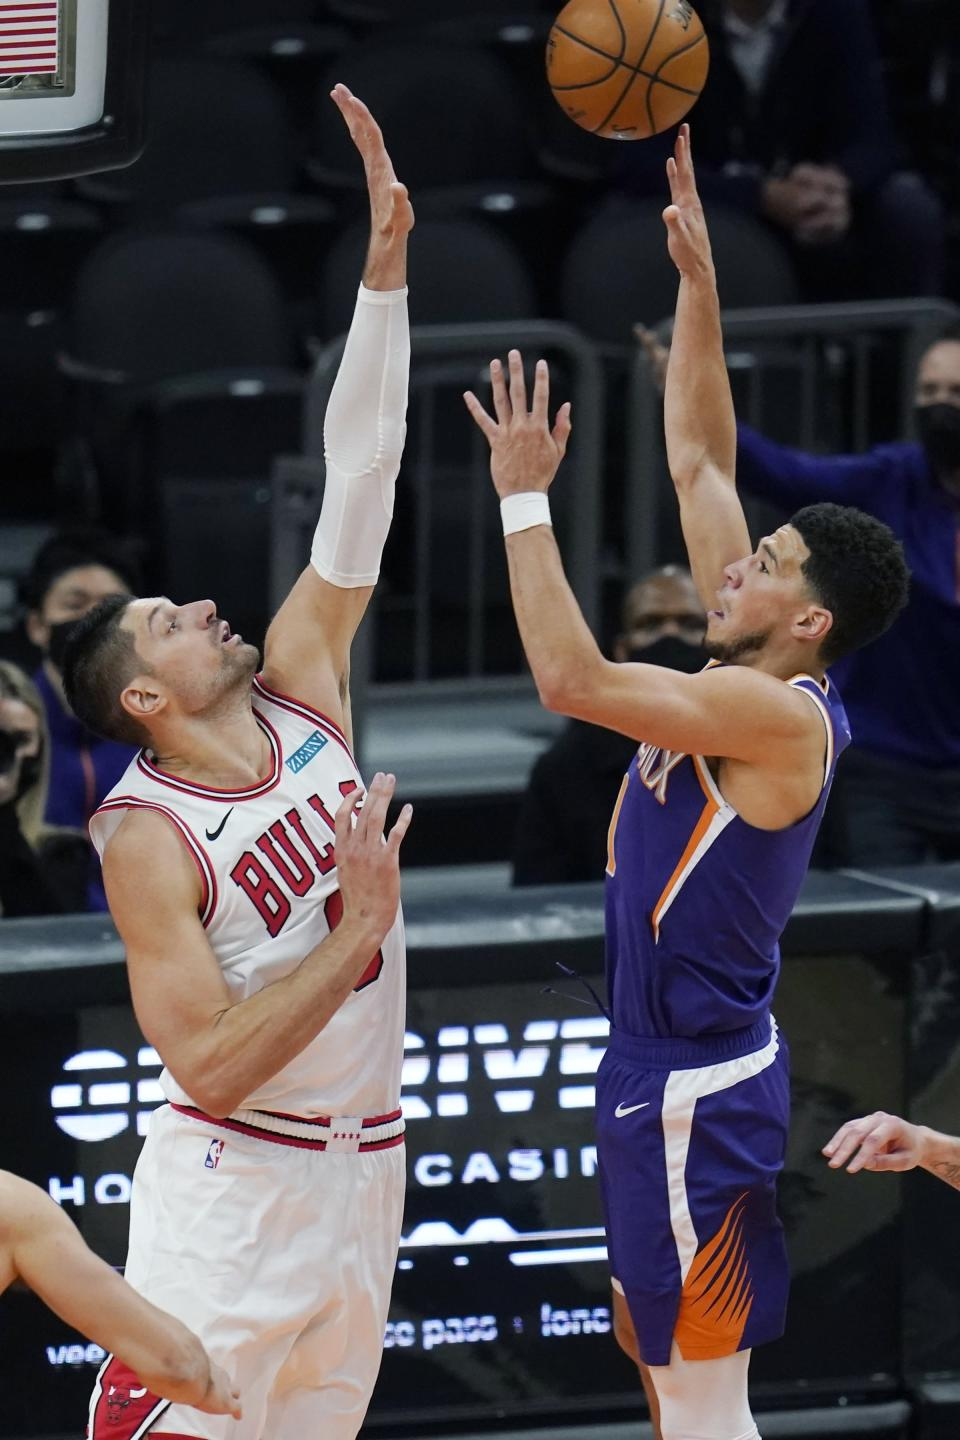 Phoenix Suns guard Devin Booker, right, shoots over Chicago Bulls center Nikola Vucevic during the second half of an NBA basketball game Wednesday, March 31, 2021, in Phoenix. (AP Photo/Ross D. Franklin)